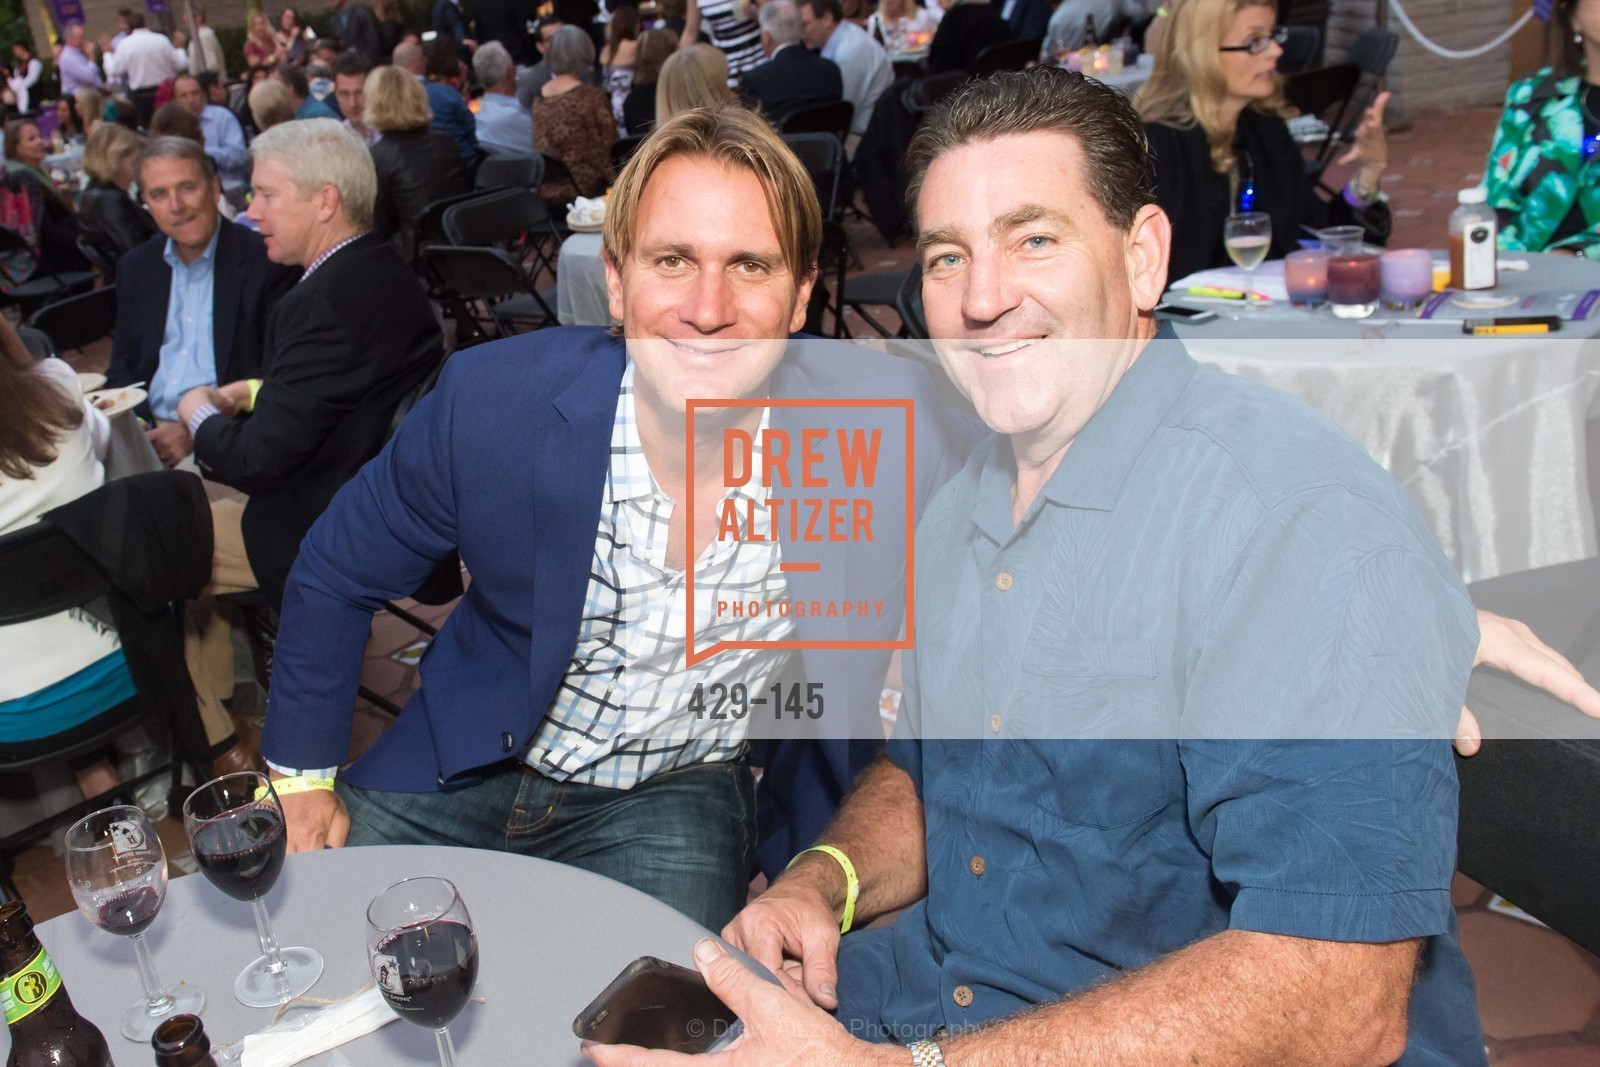 Rick Kerzic, Kurt Smith, DREAMS HAPPEN: Playhouse Auction and Gala, Stanford Shopping Center, June 5th, 2015,Drew Altizer, Drew Altizer Photography, full-service agency, private events, San Francisco photographer, photographer california